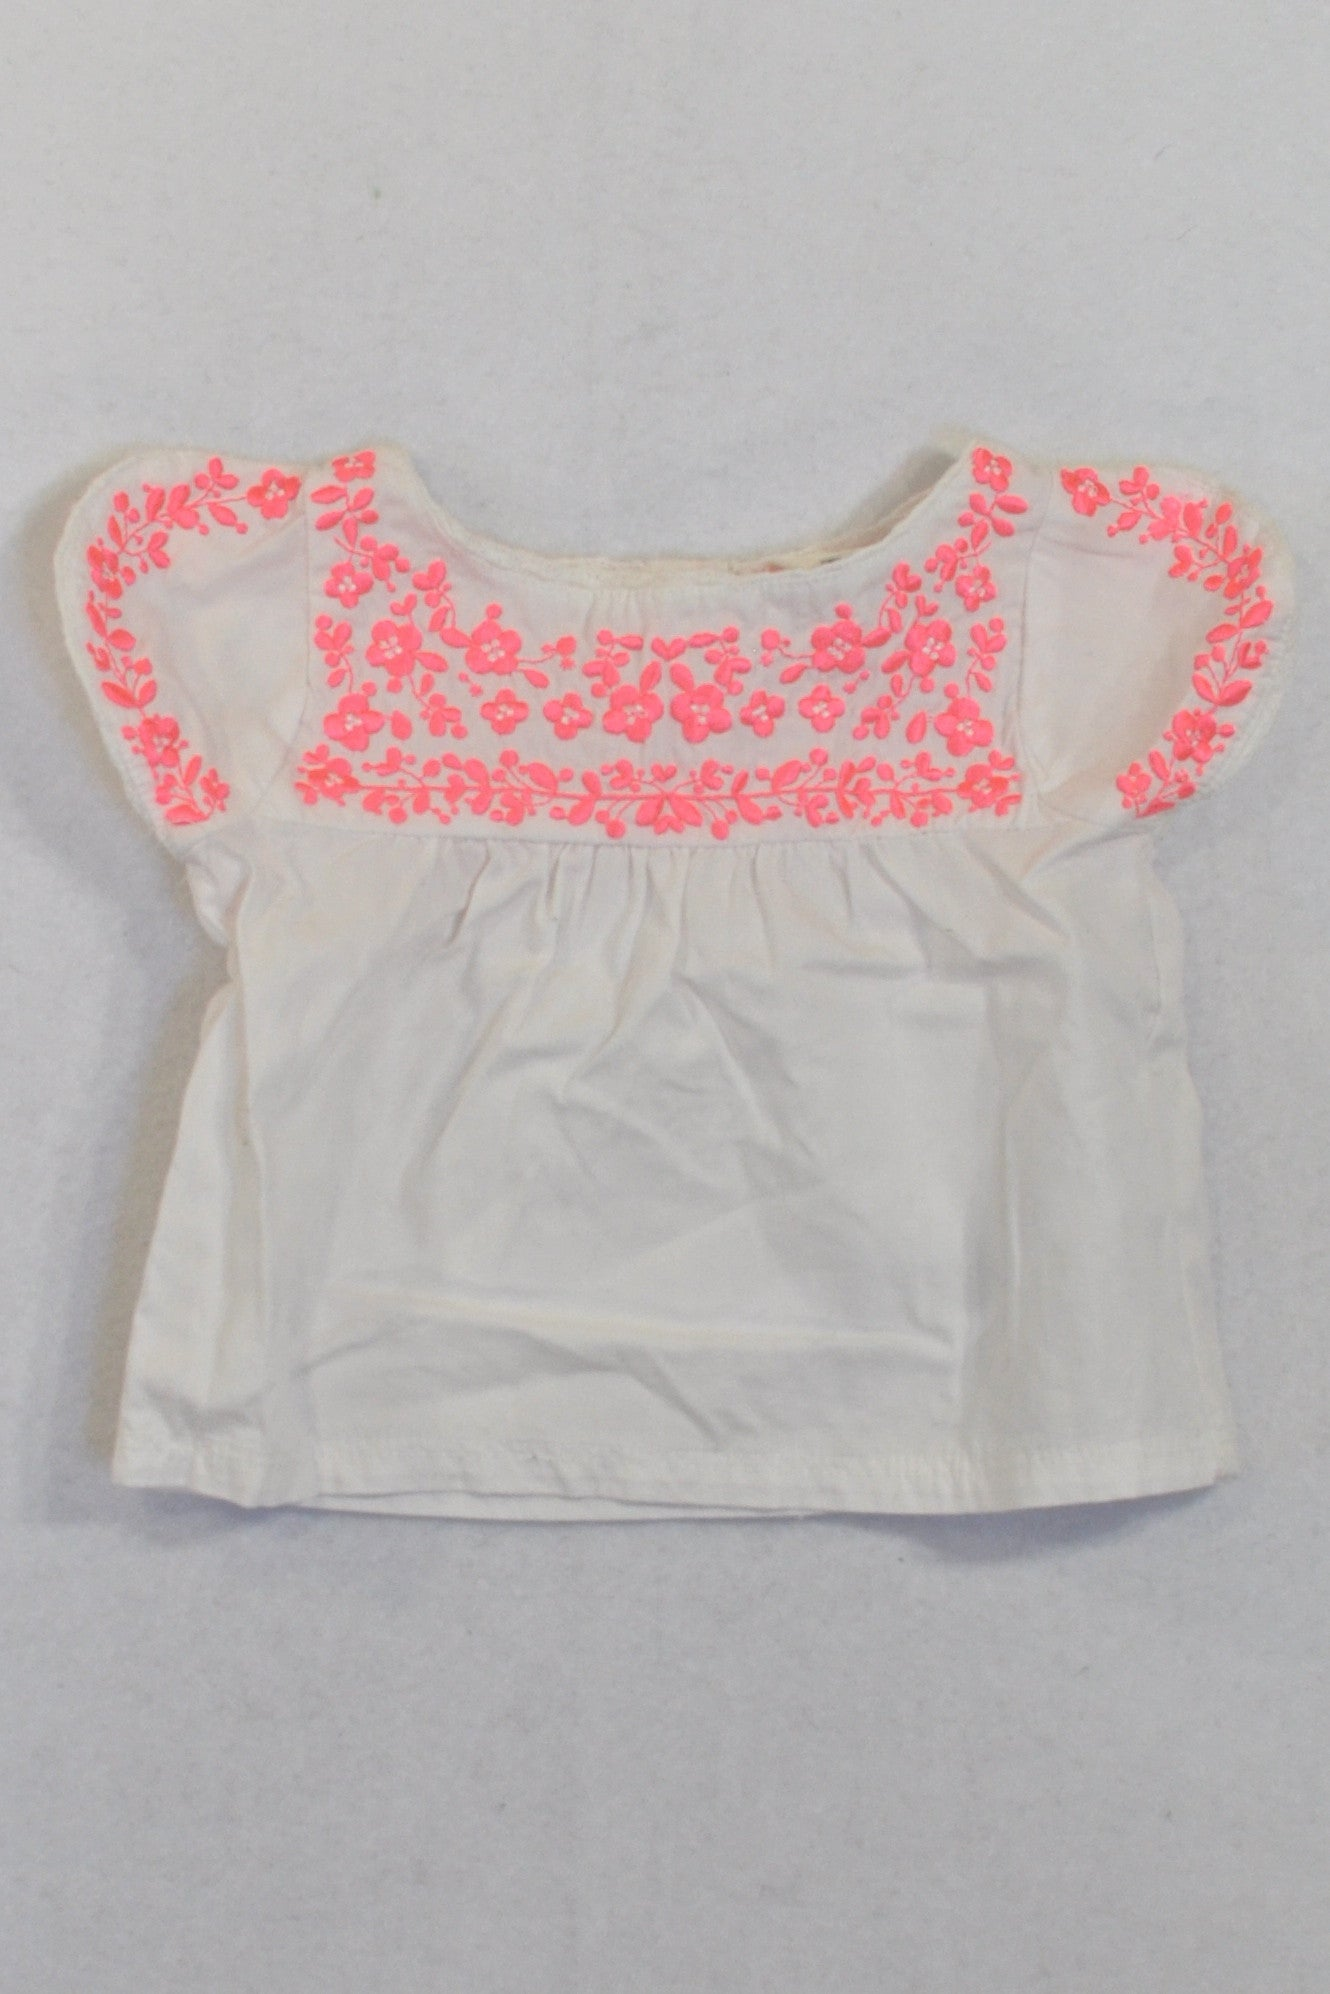 Cotton On White & Bright Pink Embroidered Blouse Girls N-B